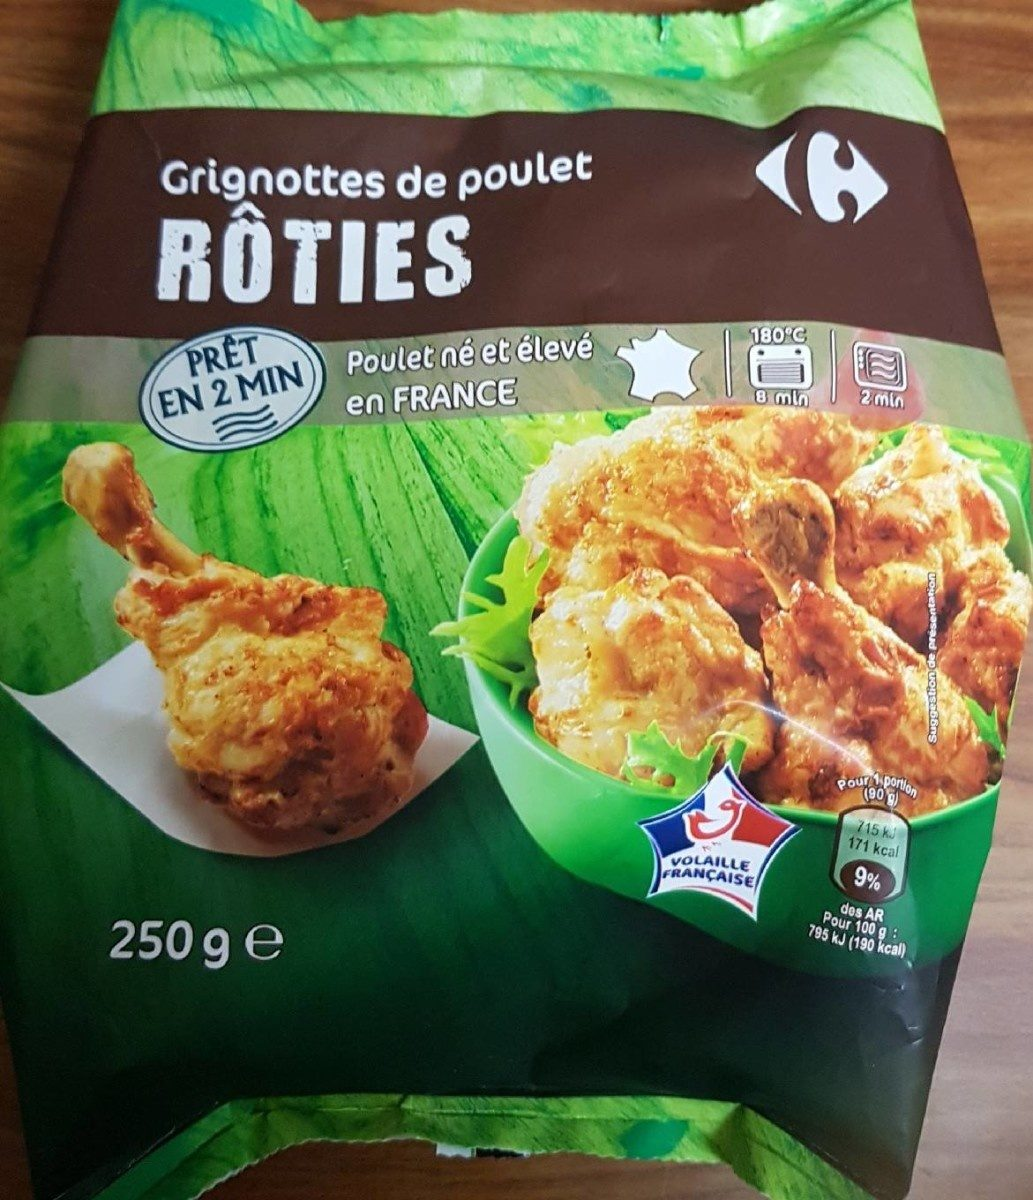 Grignottes de poulet Roties - Nutrition facts - fr